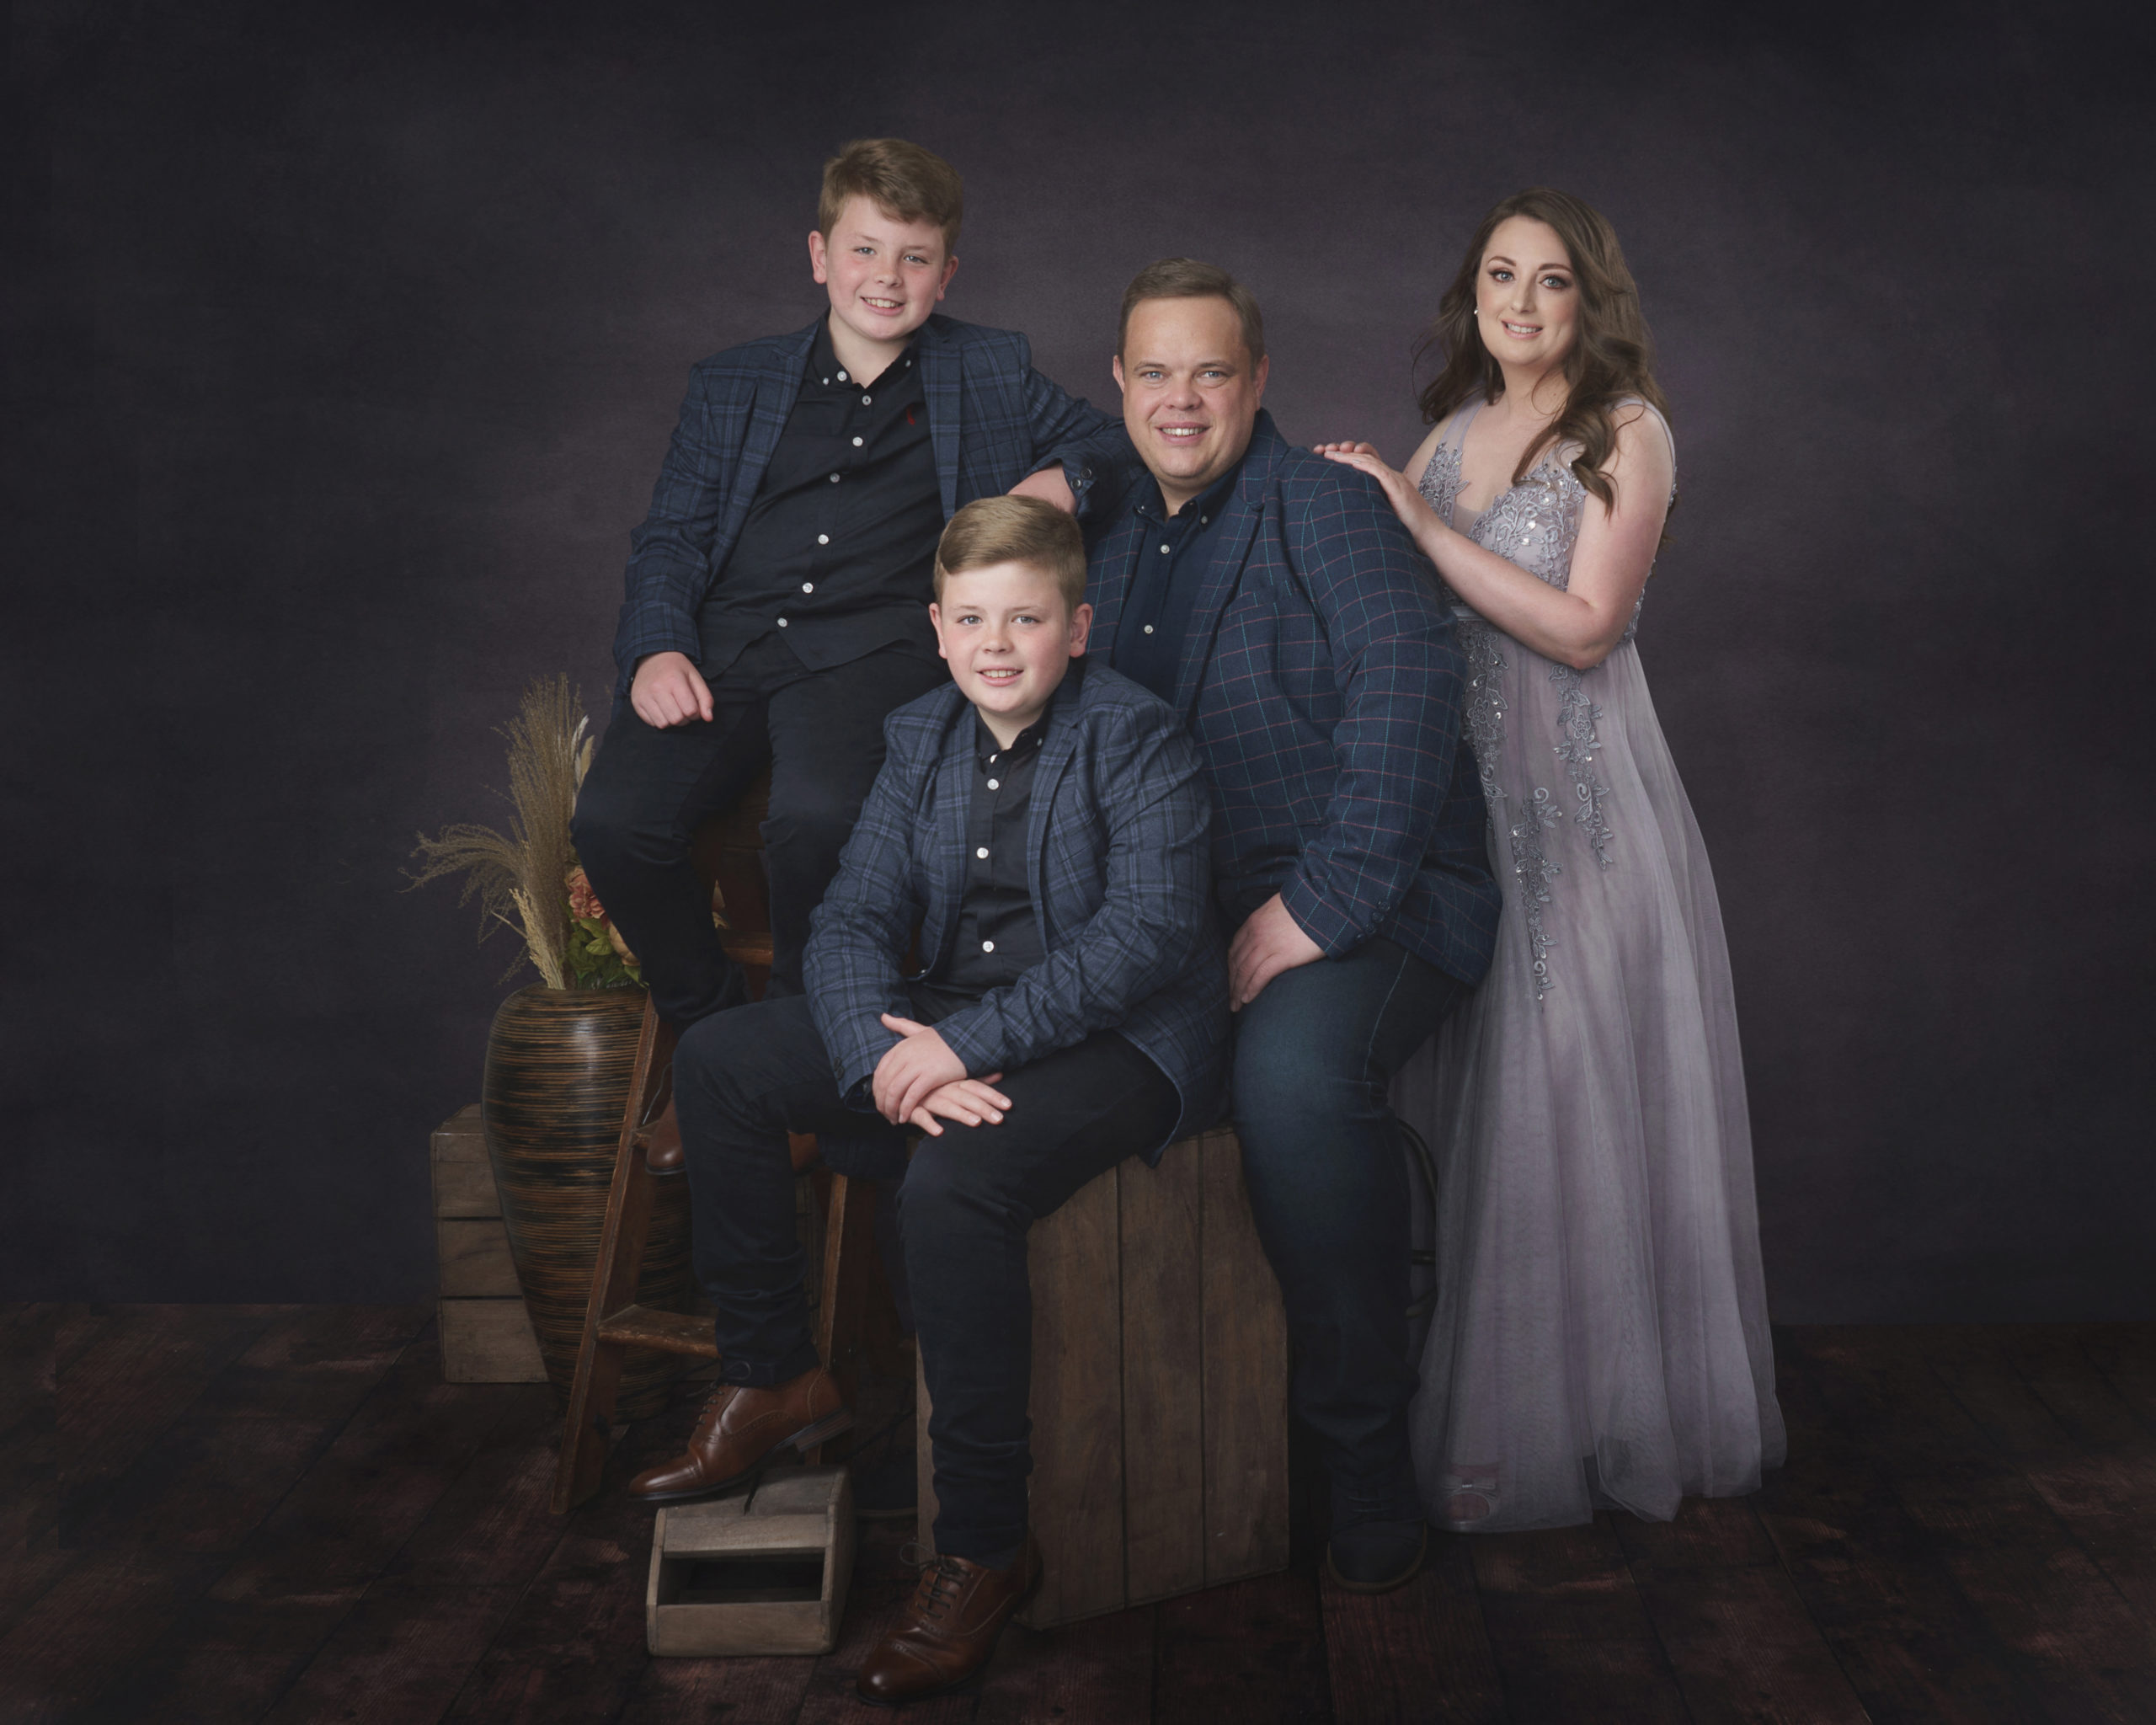 family with two boys in dark background photography studio by Family photographer in preston lancashire